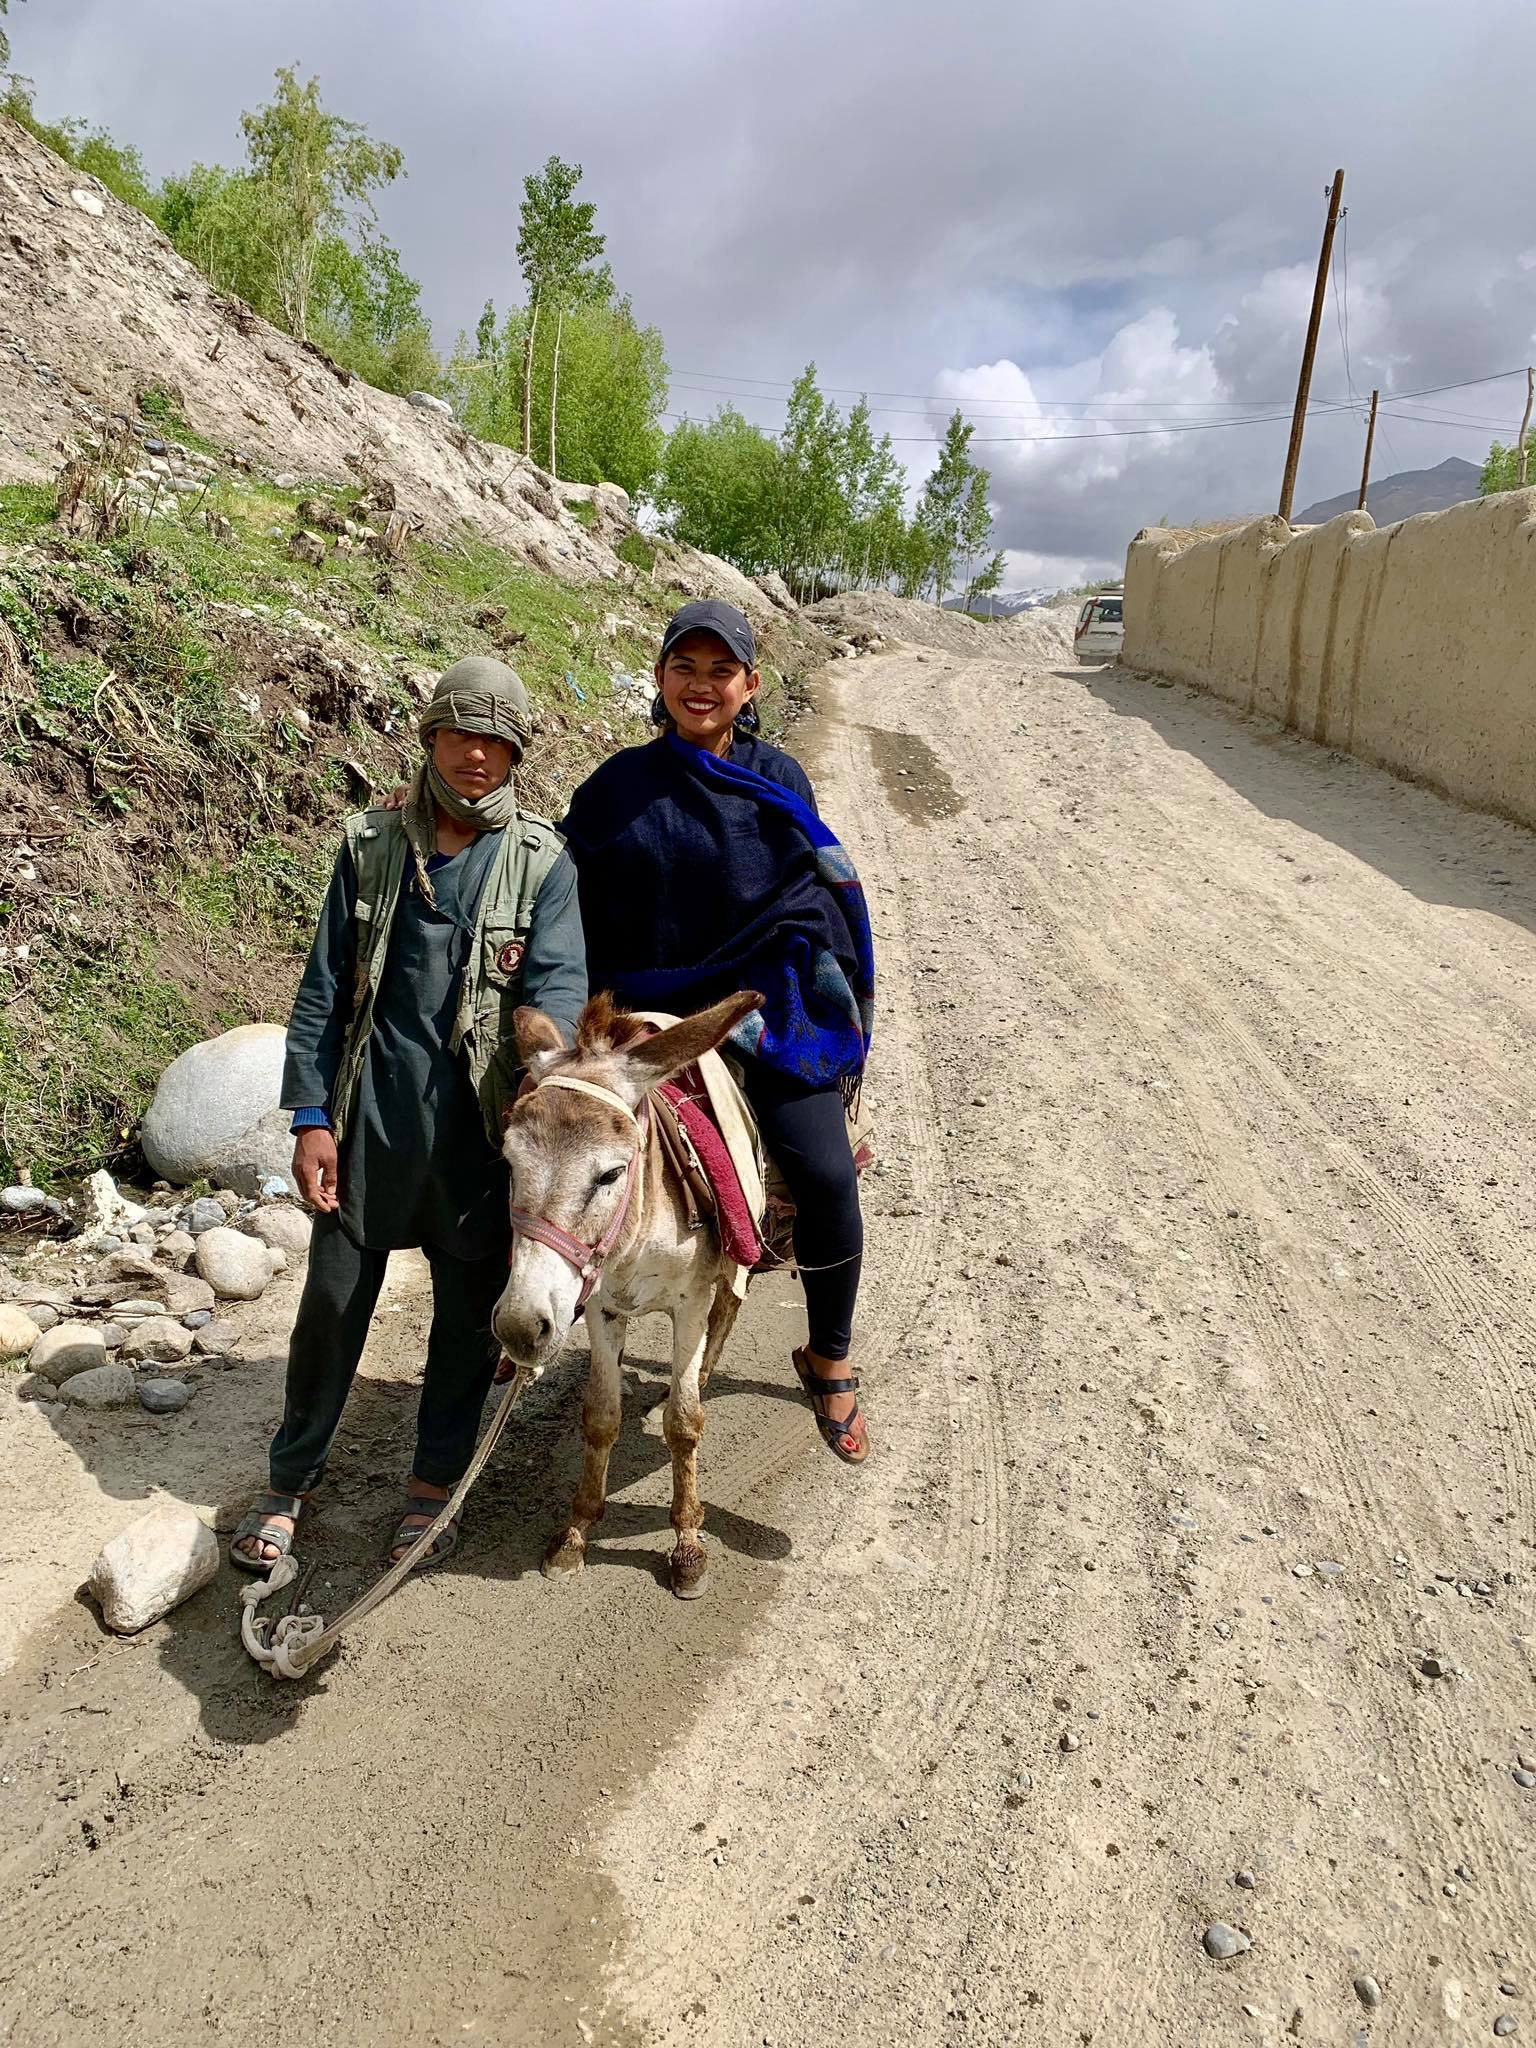 Kach Solo Travels in 2019 AFGHANISTAN, my 127th country2.jpg